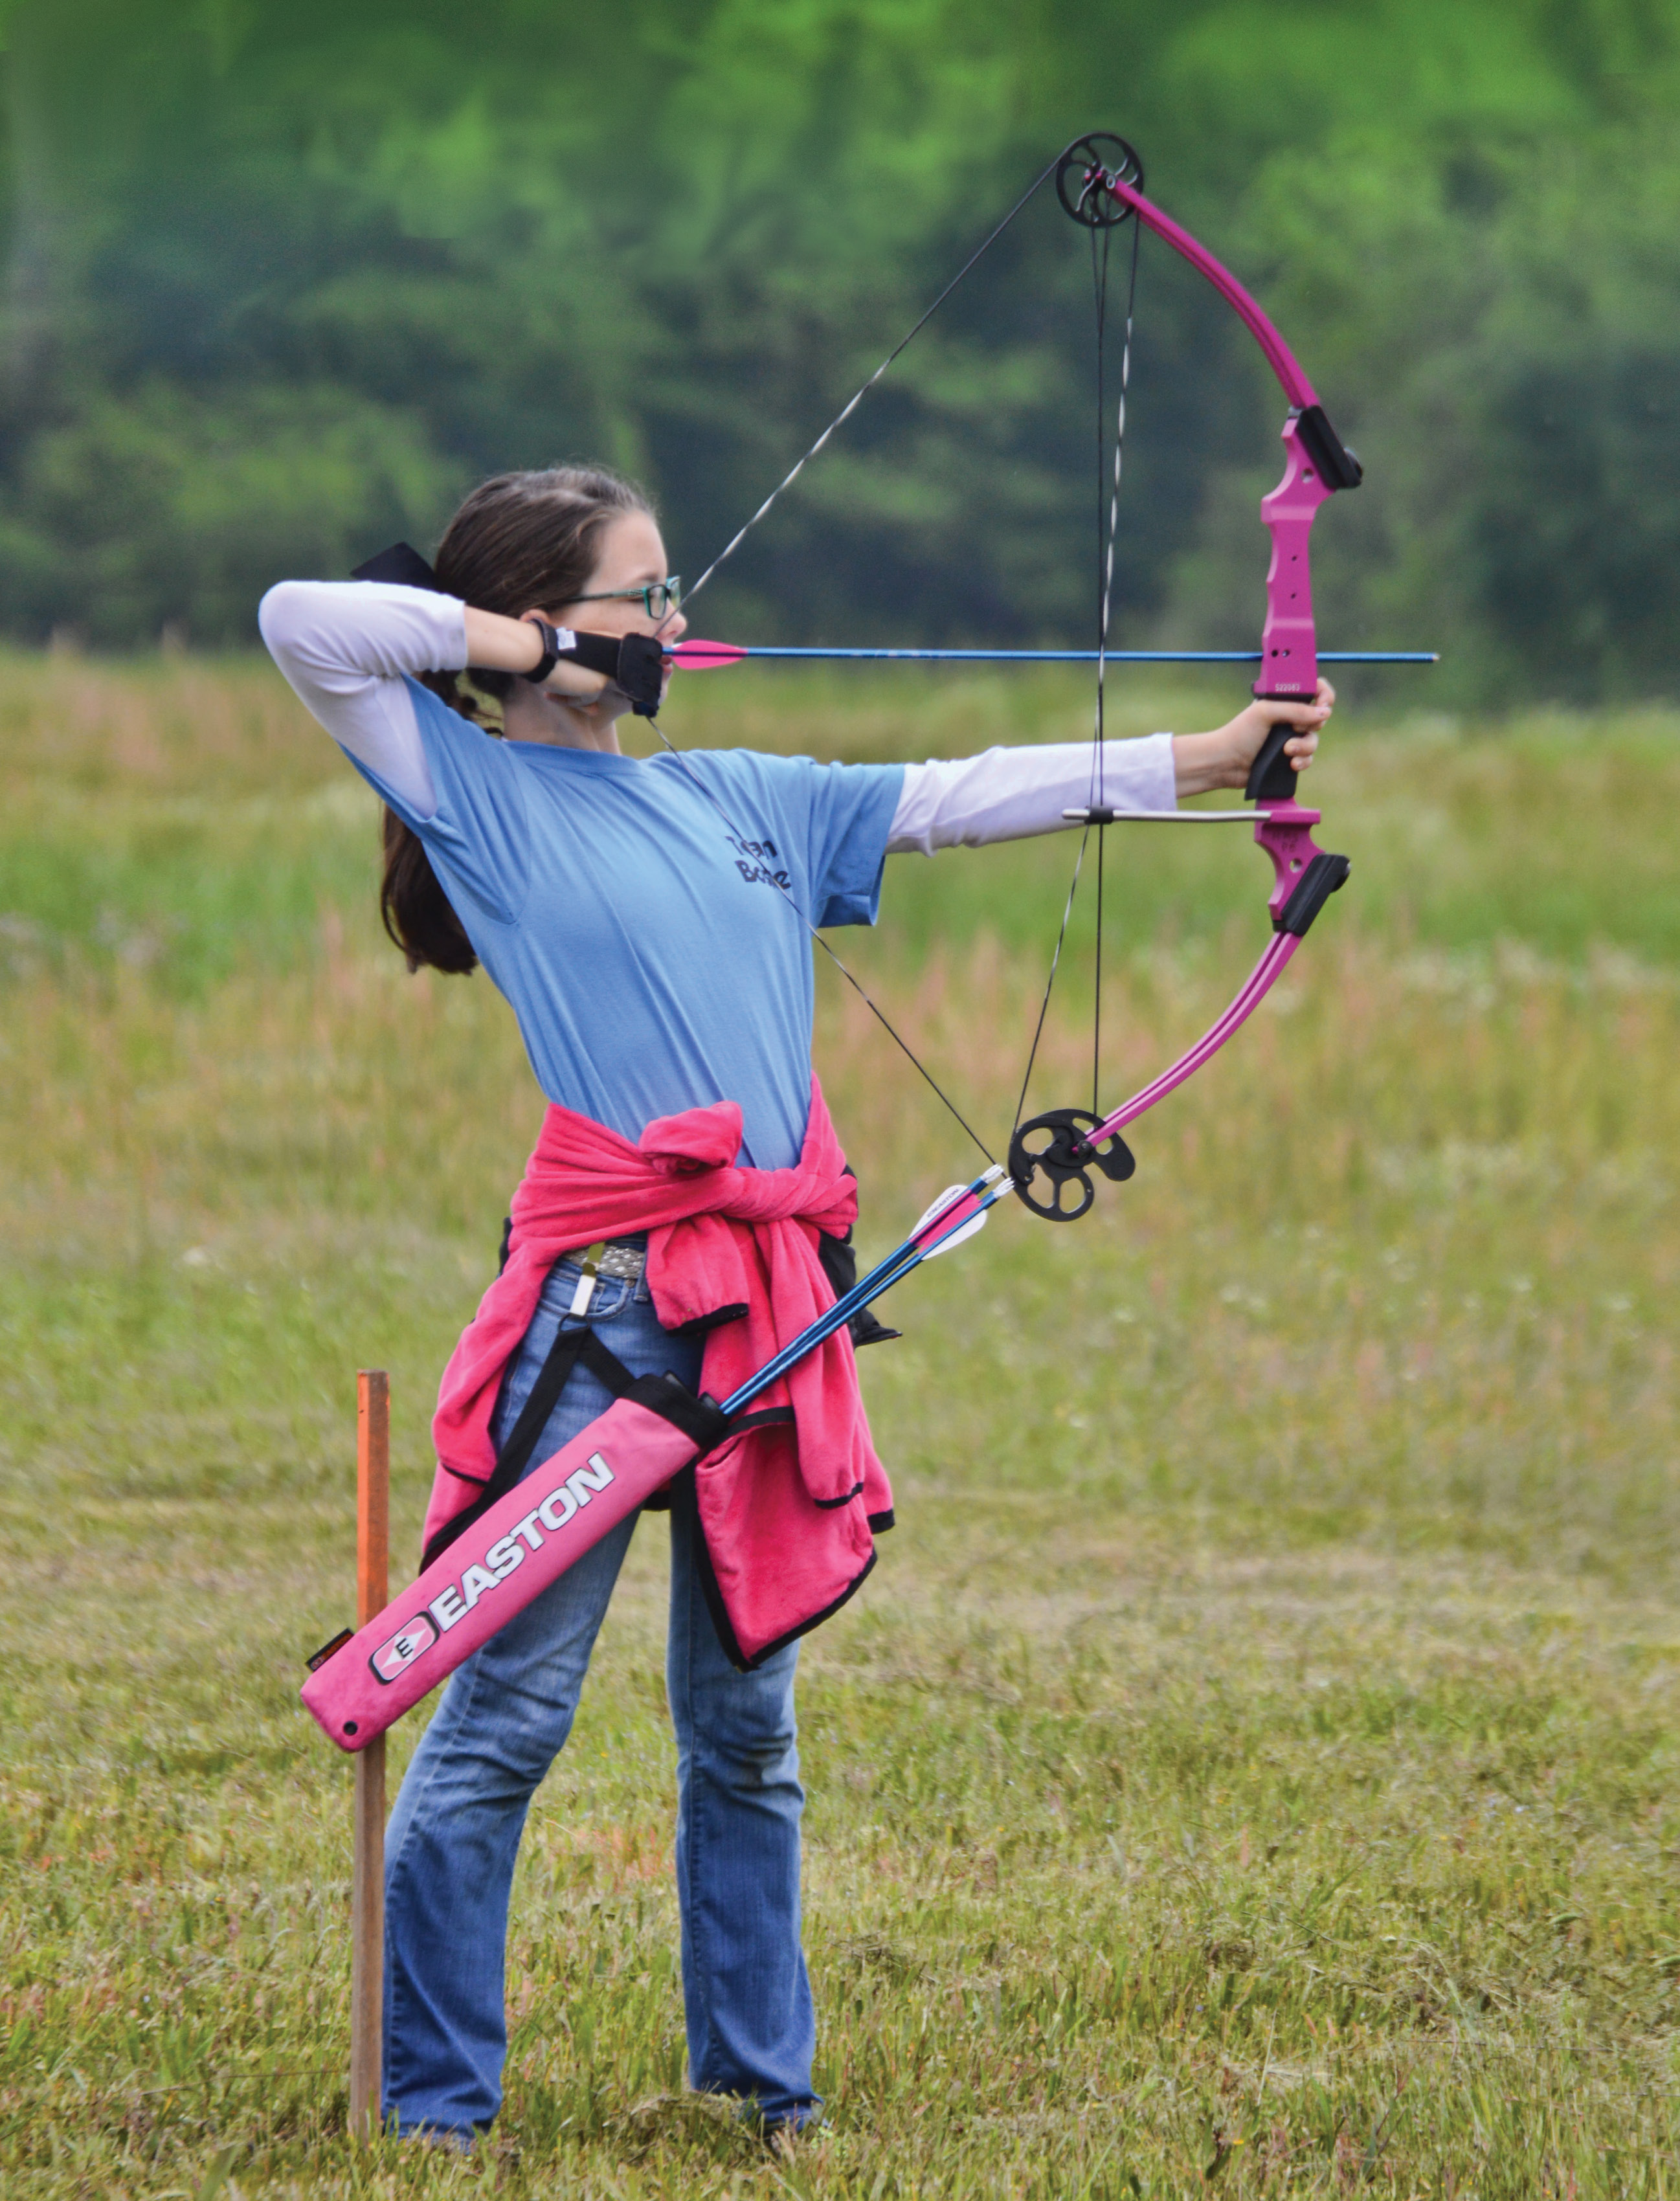 4-H Shooting Sports a Perfect Fit for Louisiana